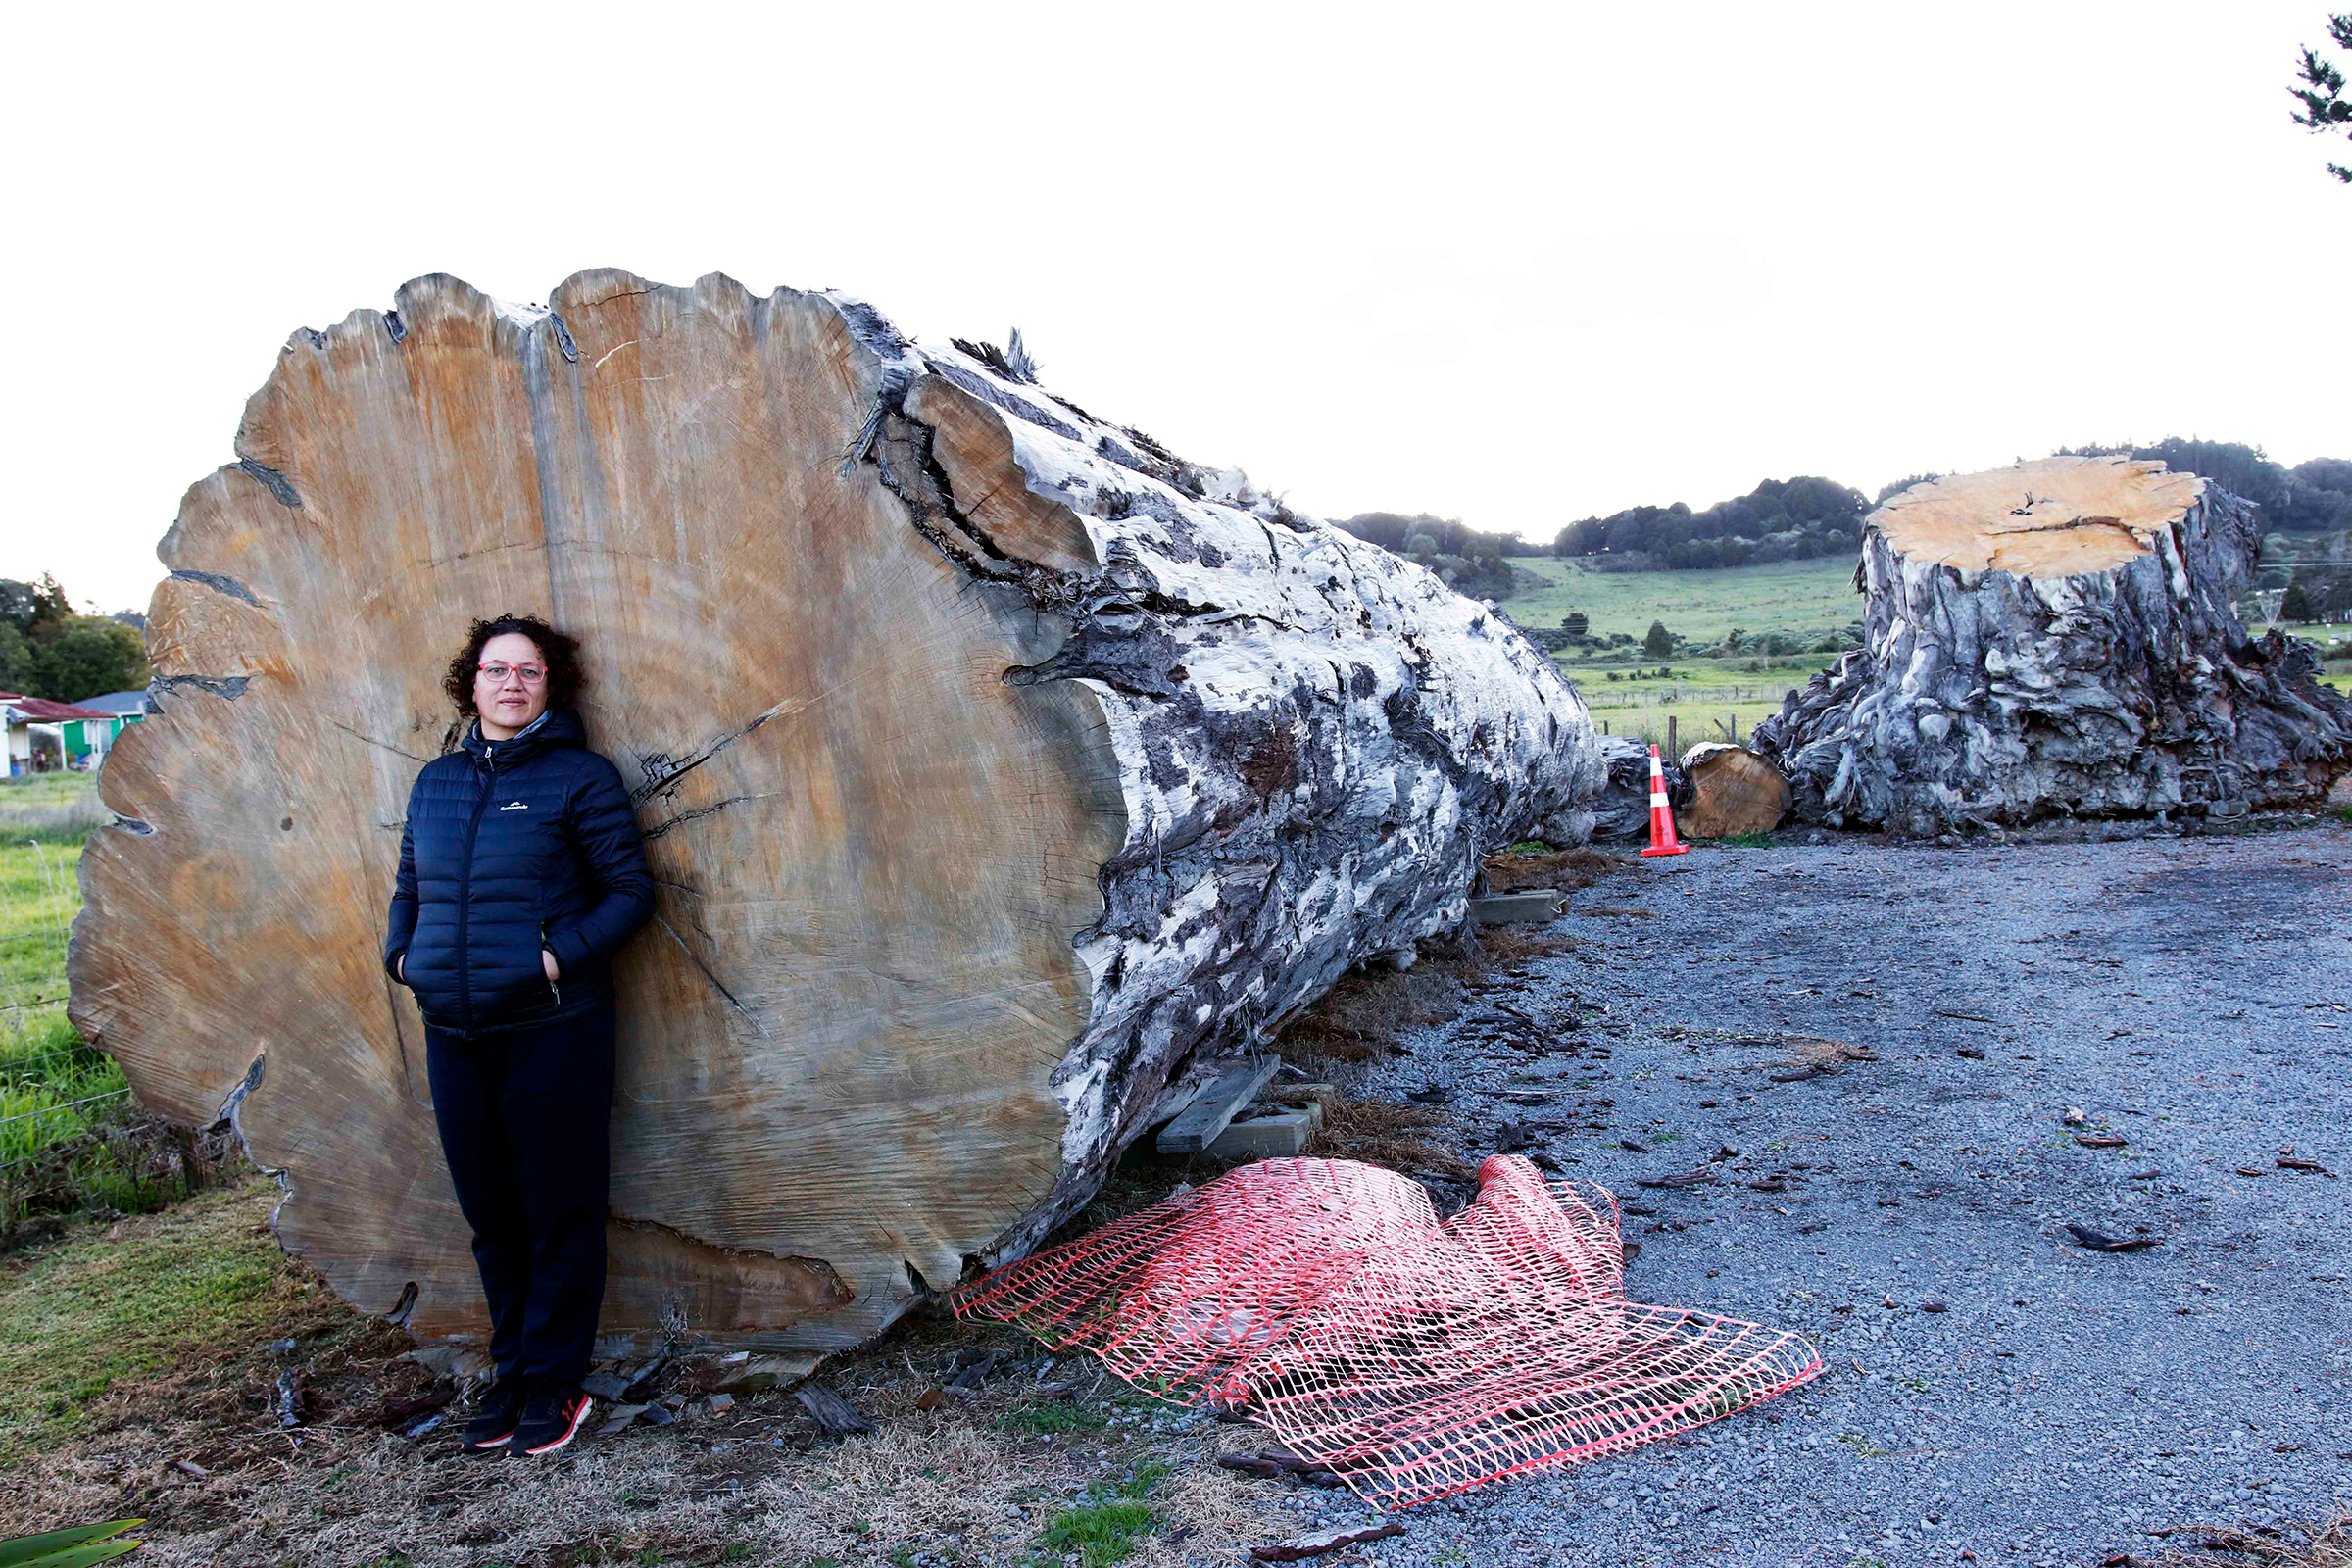 For now, the giant tree rests in three pieces in the parking lot of the Ngāwhā marae, or meeting house, in New Zealand's far north, watched over by Donna Tukariri. Photograph by Kate Evans.